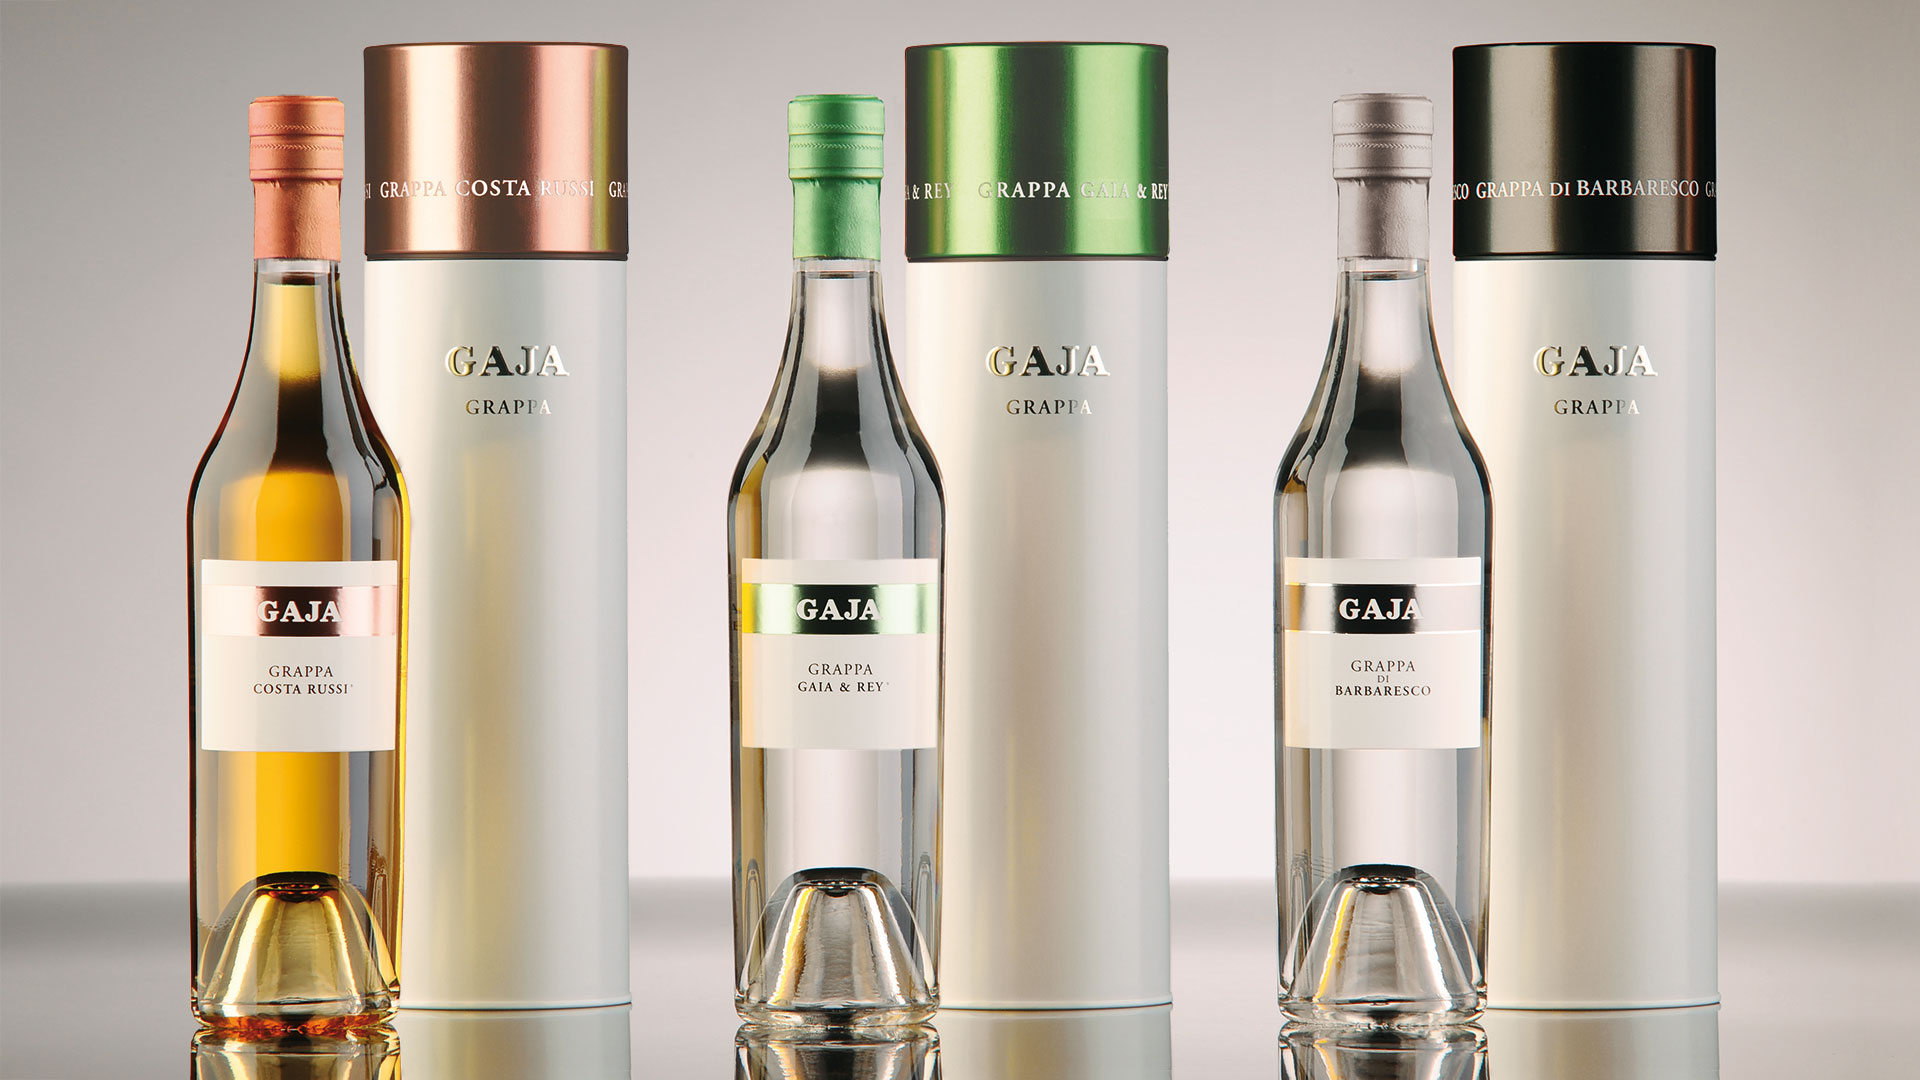 Gaja grappa packaging